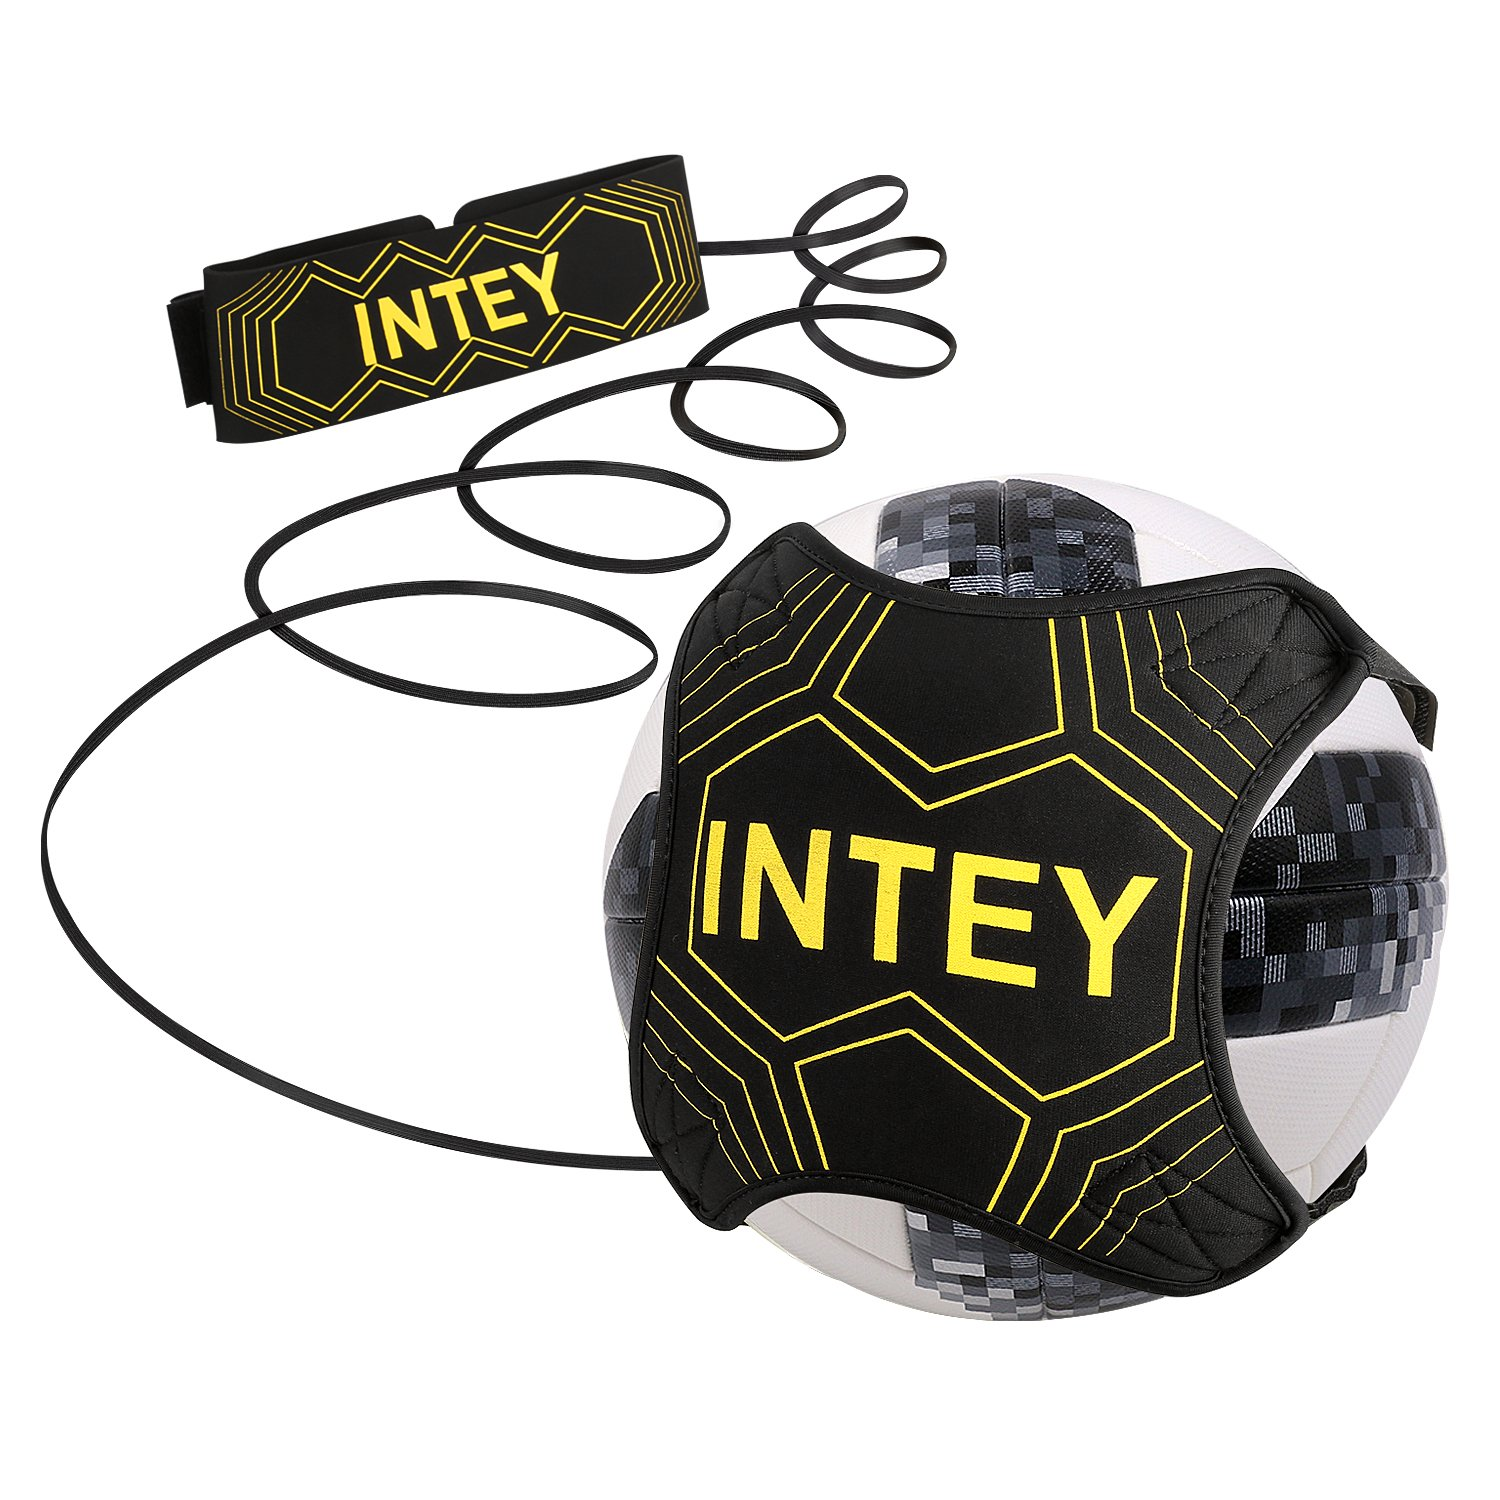 INTEY Fußball Kick Trainer Soccer Trainer with 2 Super Elastisches Bands